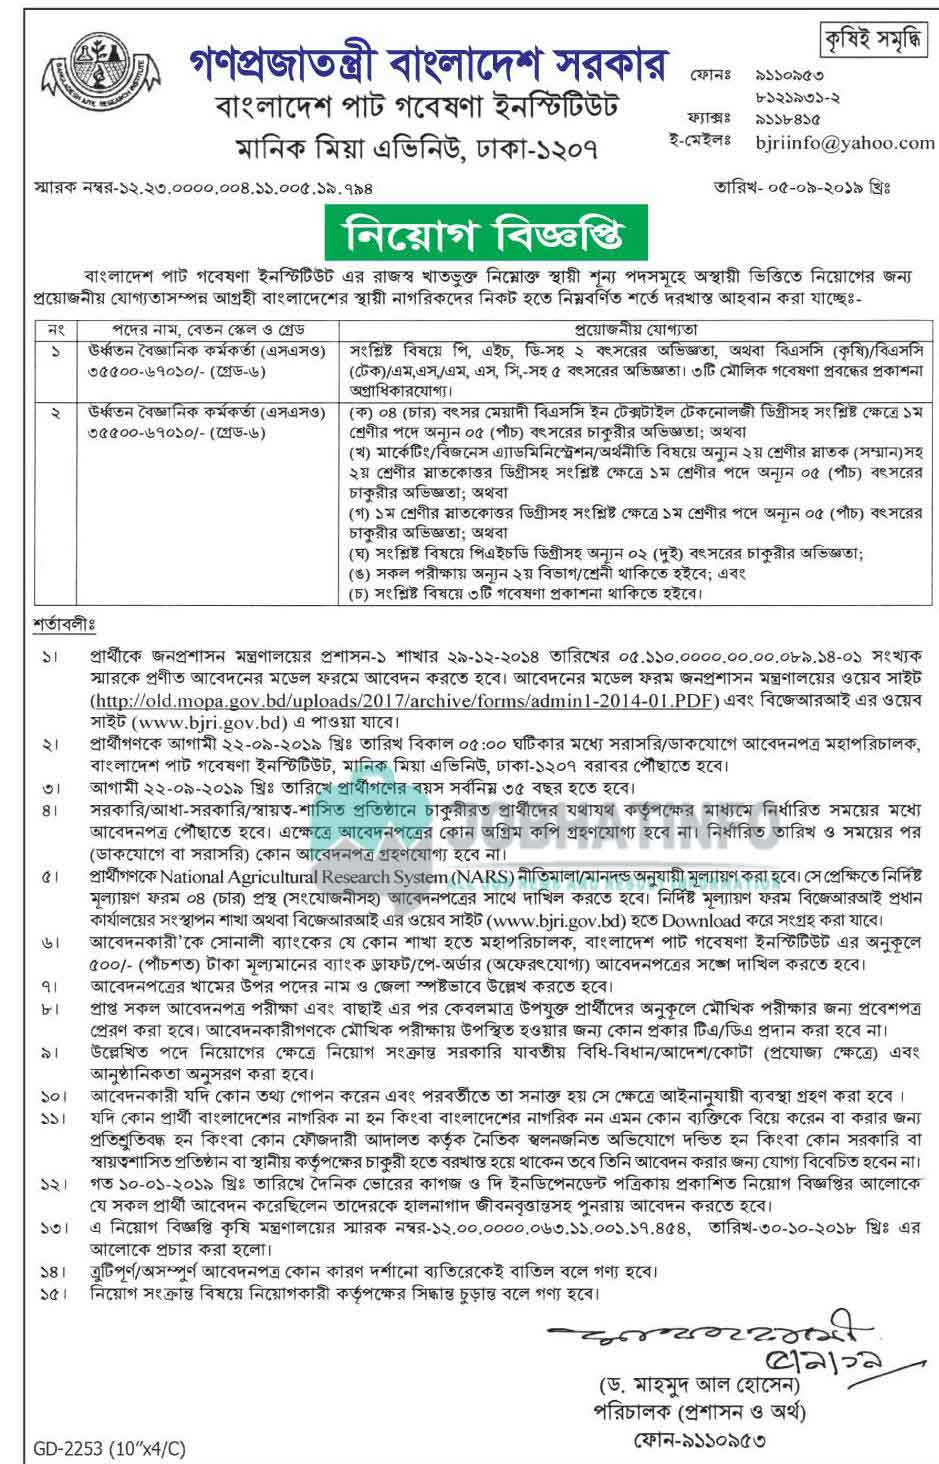 Ministry of Textiles and Jute MOTJ Job Circular 2020 1